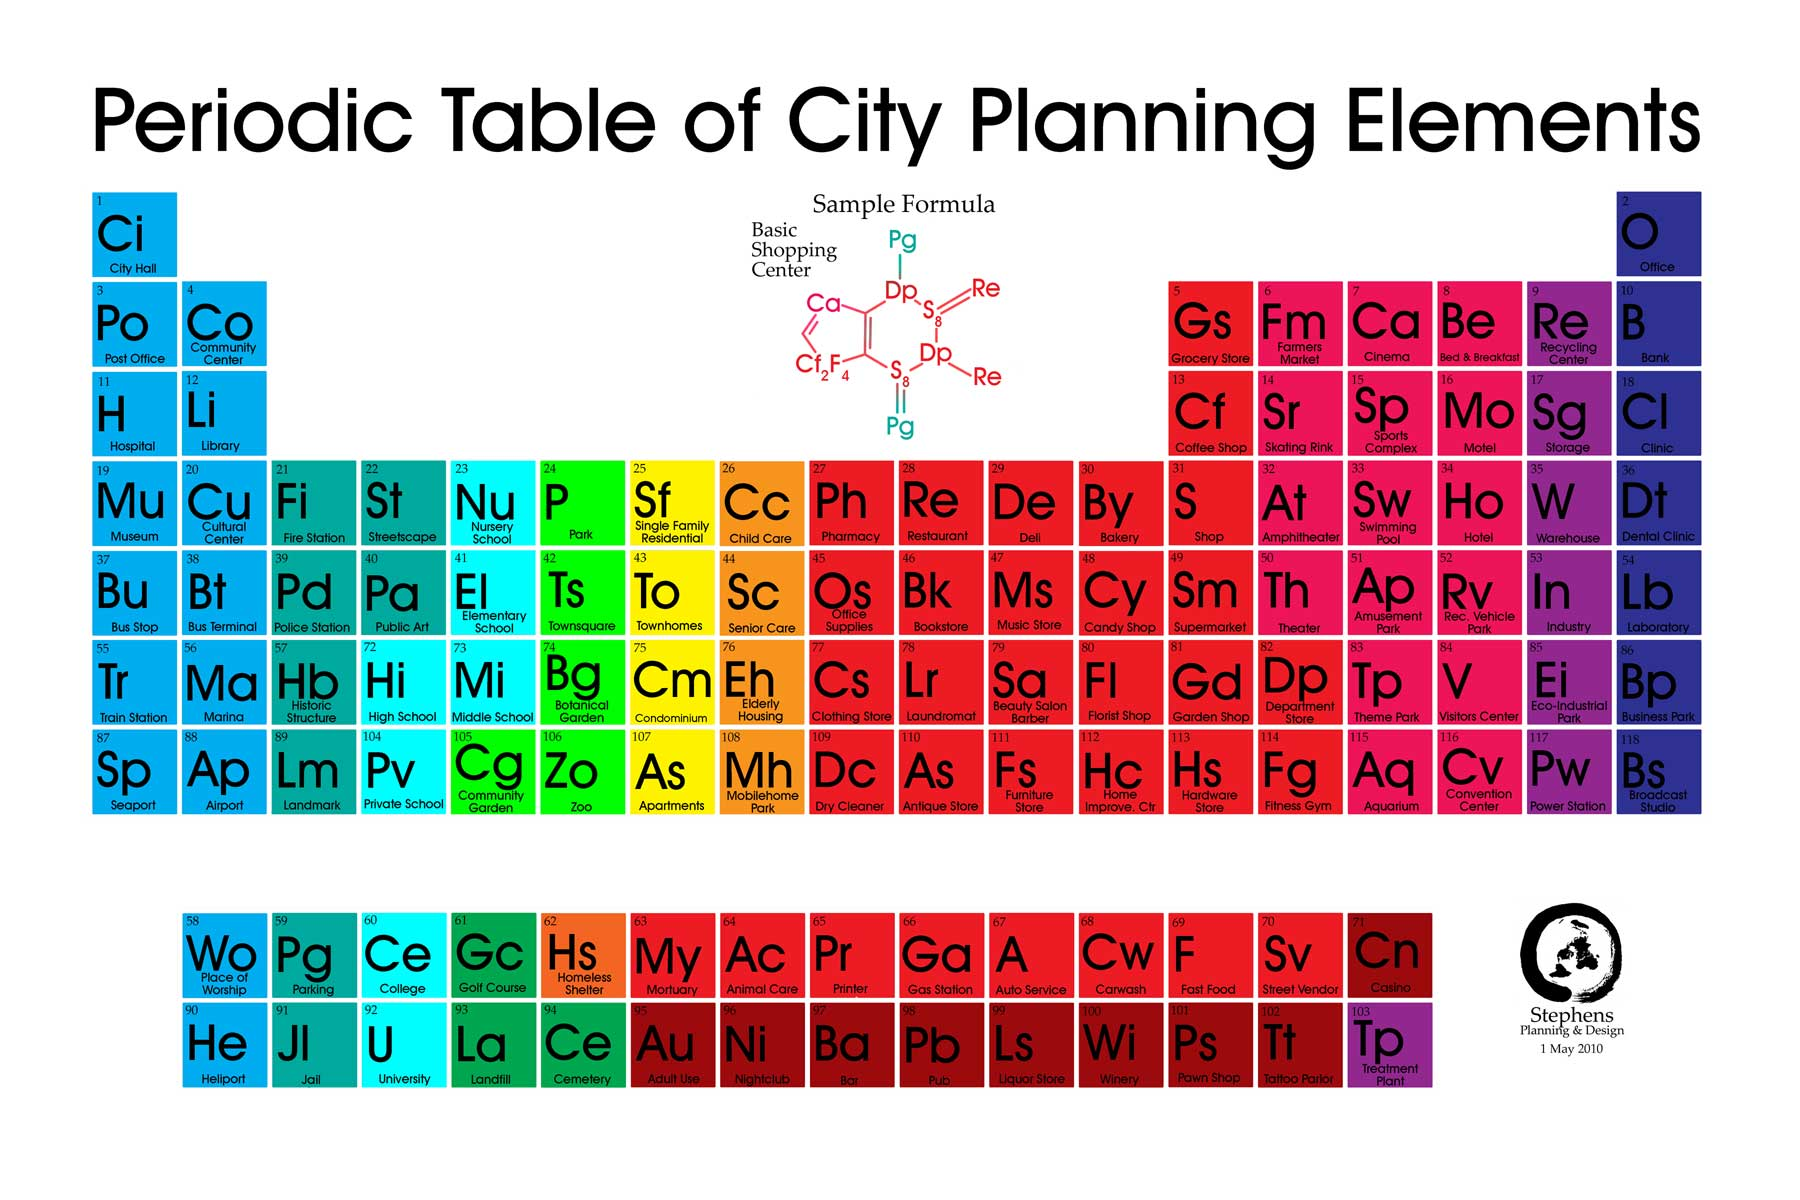 The periodic table of city planning elements features planetizen click the image to see a larger version in a new window gamestrikefo Images